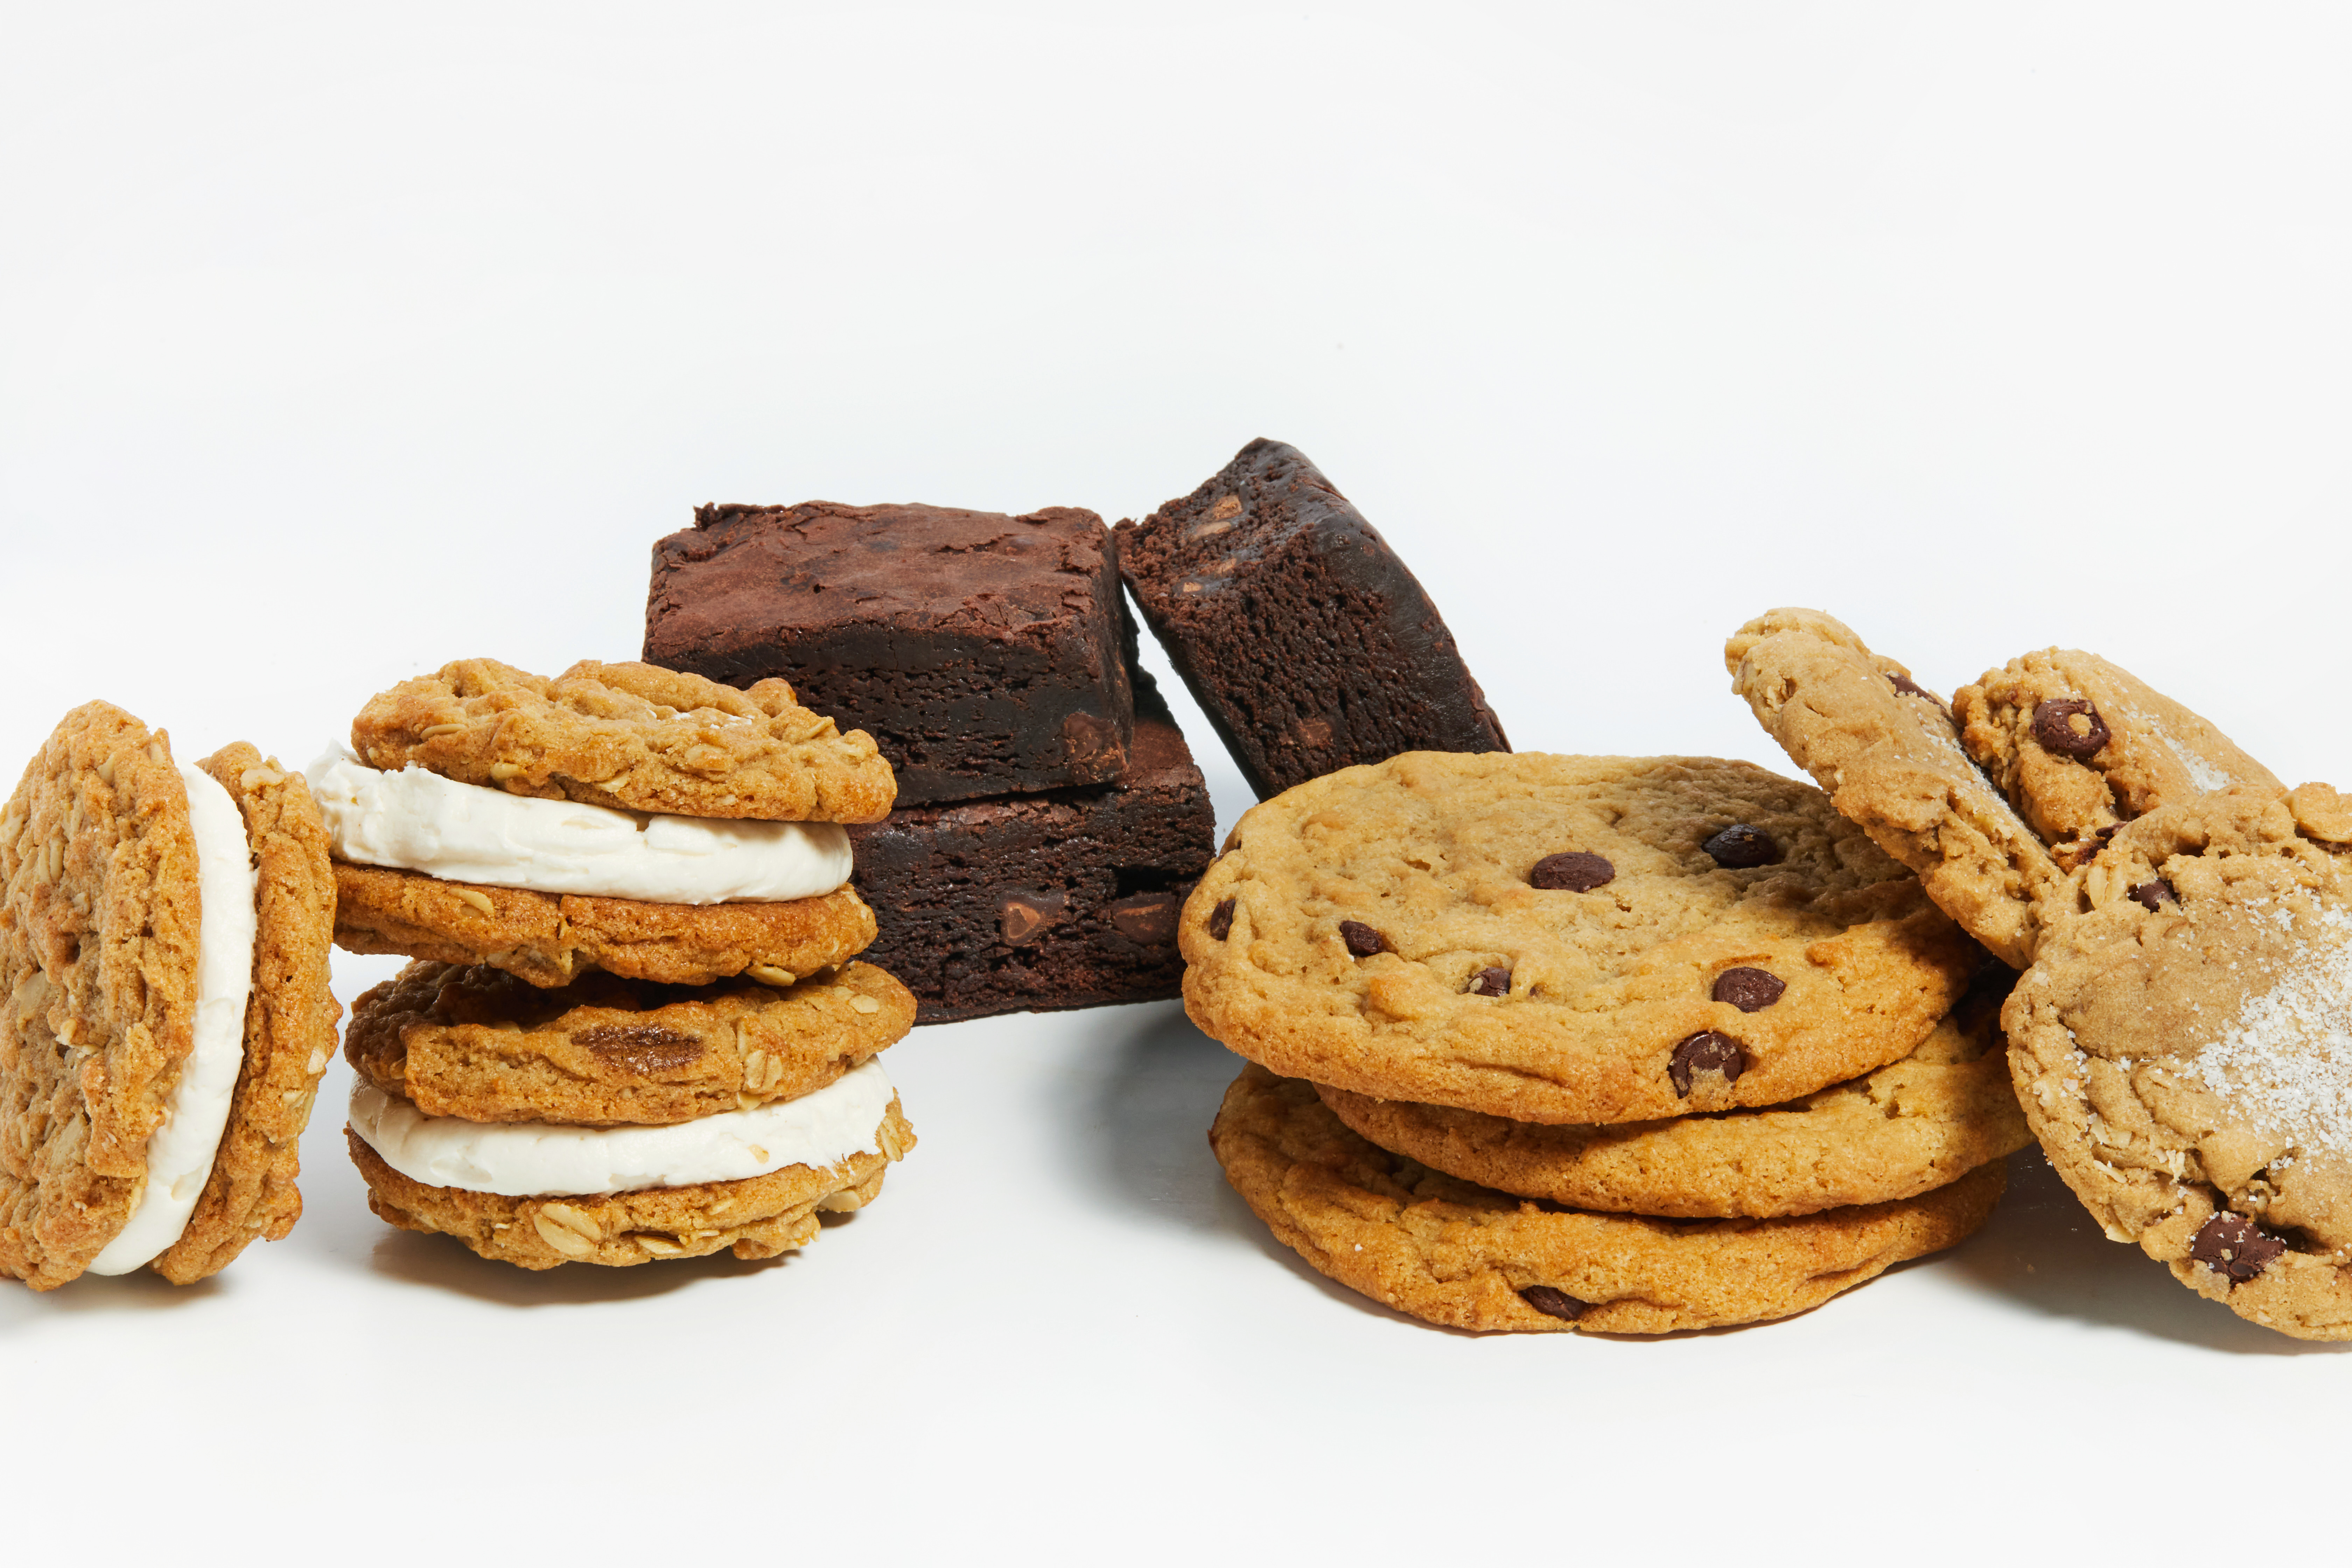 Sticky Fingers is known for its vanilla cream-filled oatmeal cookie sandwiches and Fudgetastic Brownies